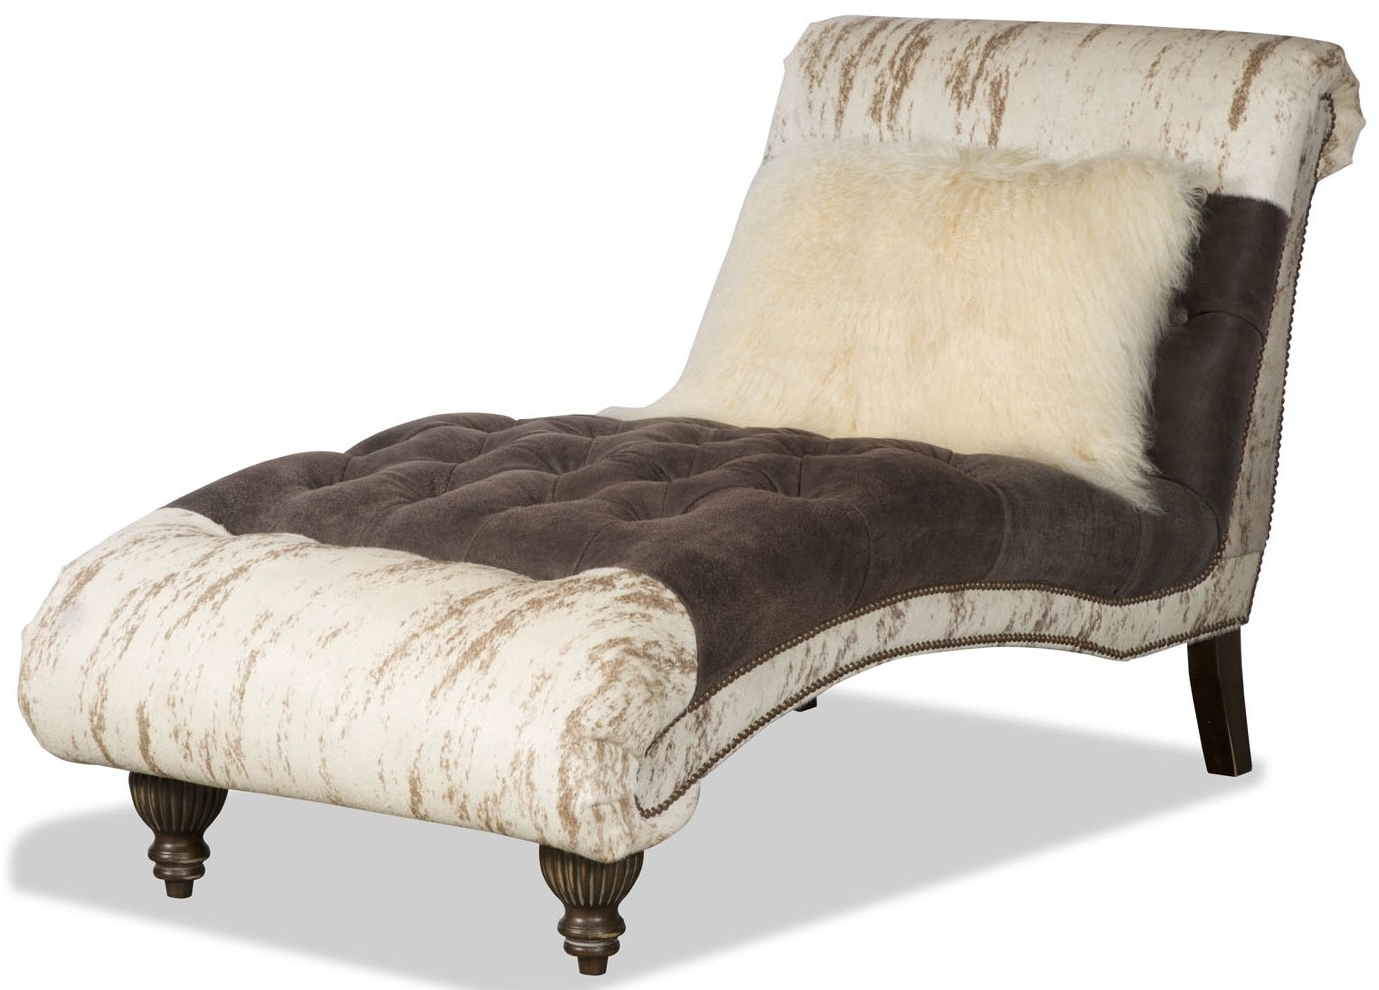 Animal Print Chaise In Favorite Chaise Benchs (View 12 of 15)